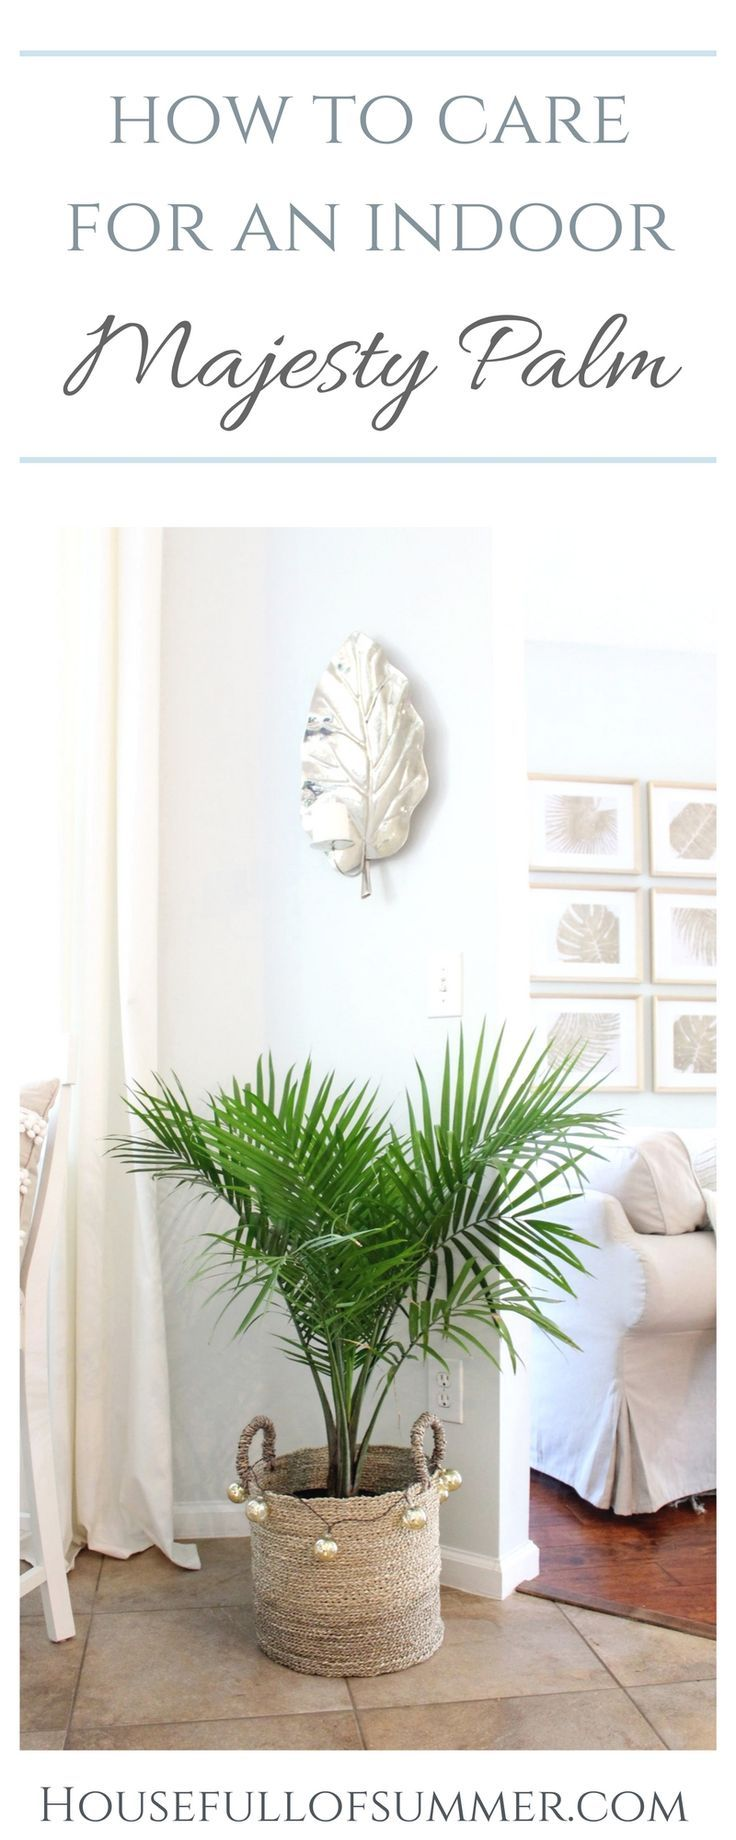 How to Care for an Indoor Majesty Palm  House Full of Summer  Coastal Home  Lifestyle Florida home plant care palm trees indoors growing tropical house plants